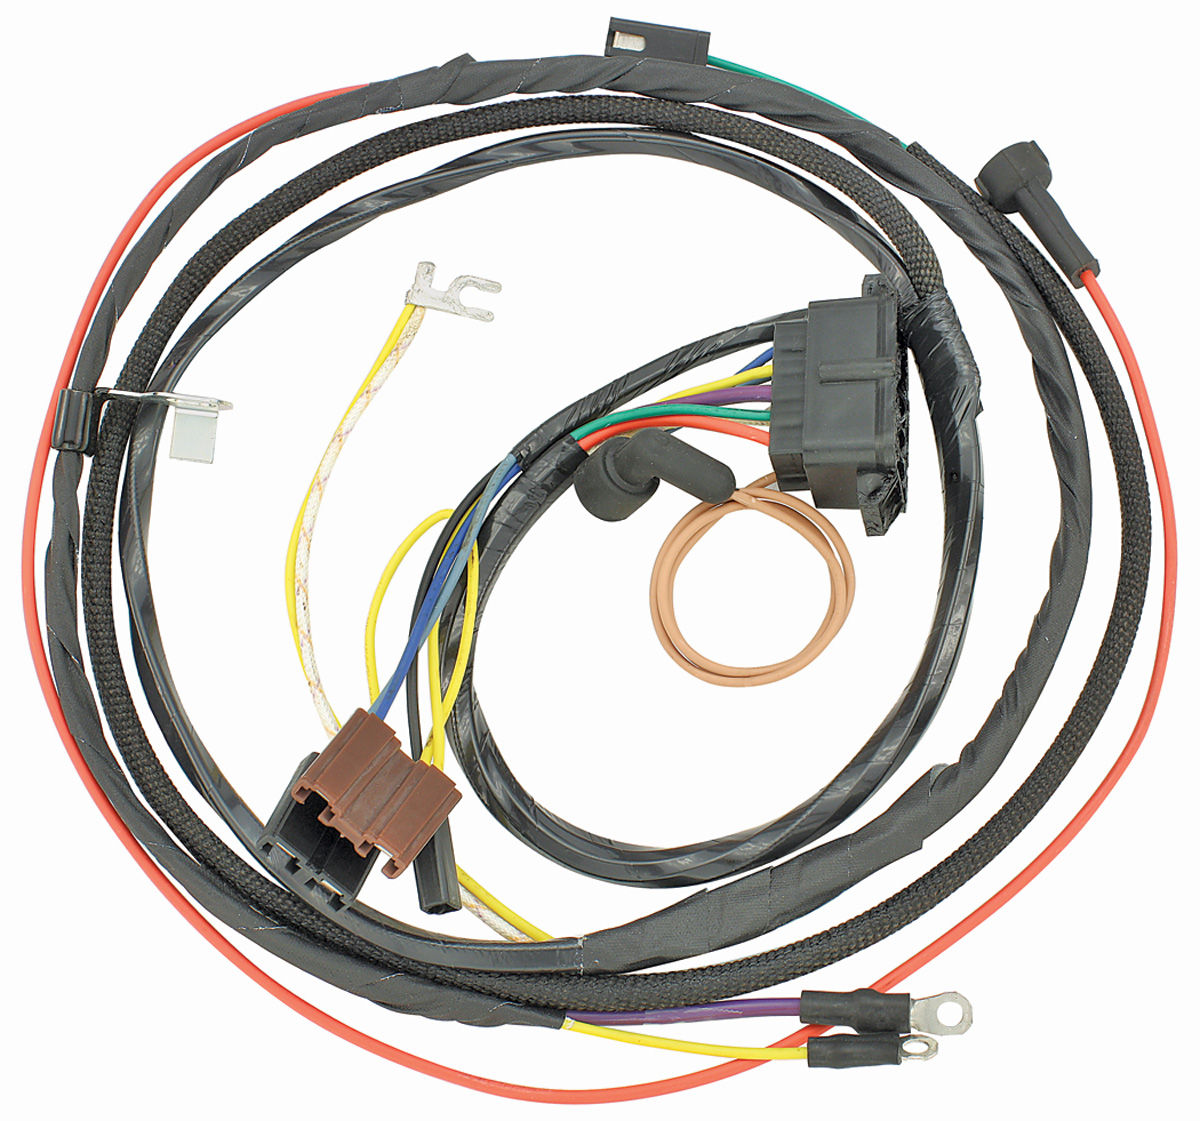 m h 1967 chevelle engine harness 396 w gauges opgi com rh opgi com 1967 chevelle engine wiring harness 1967 chevelle wiring harness diagram